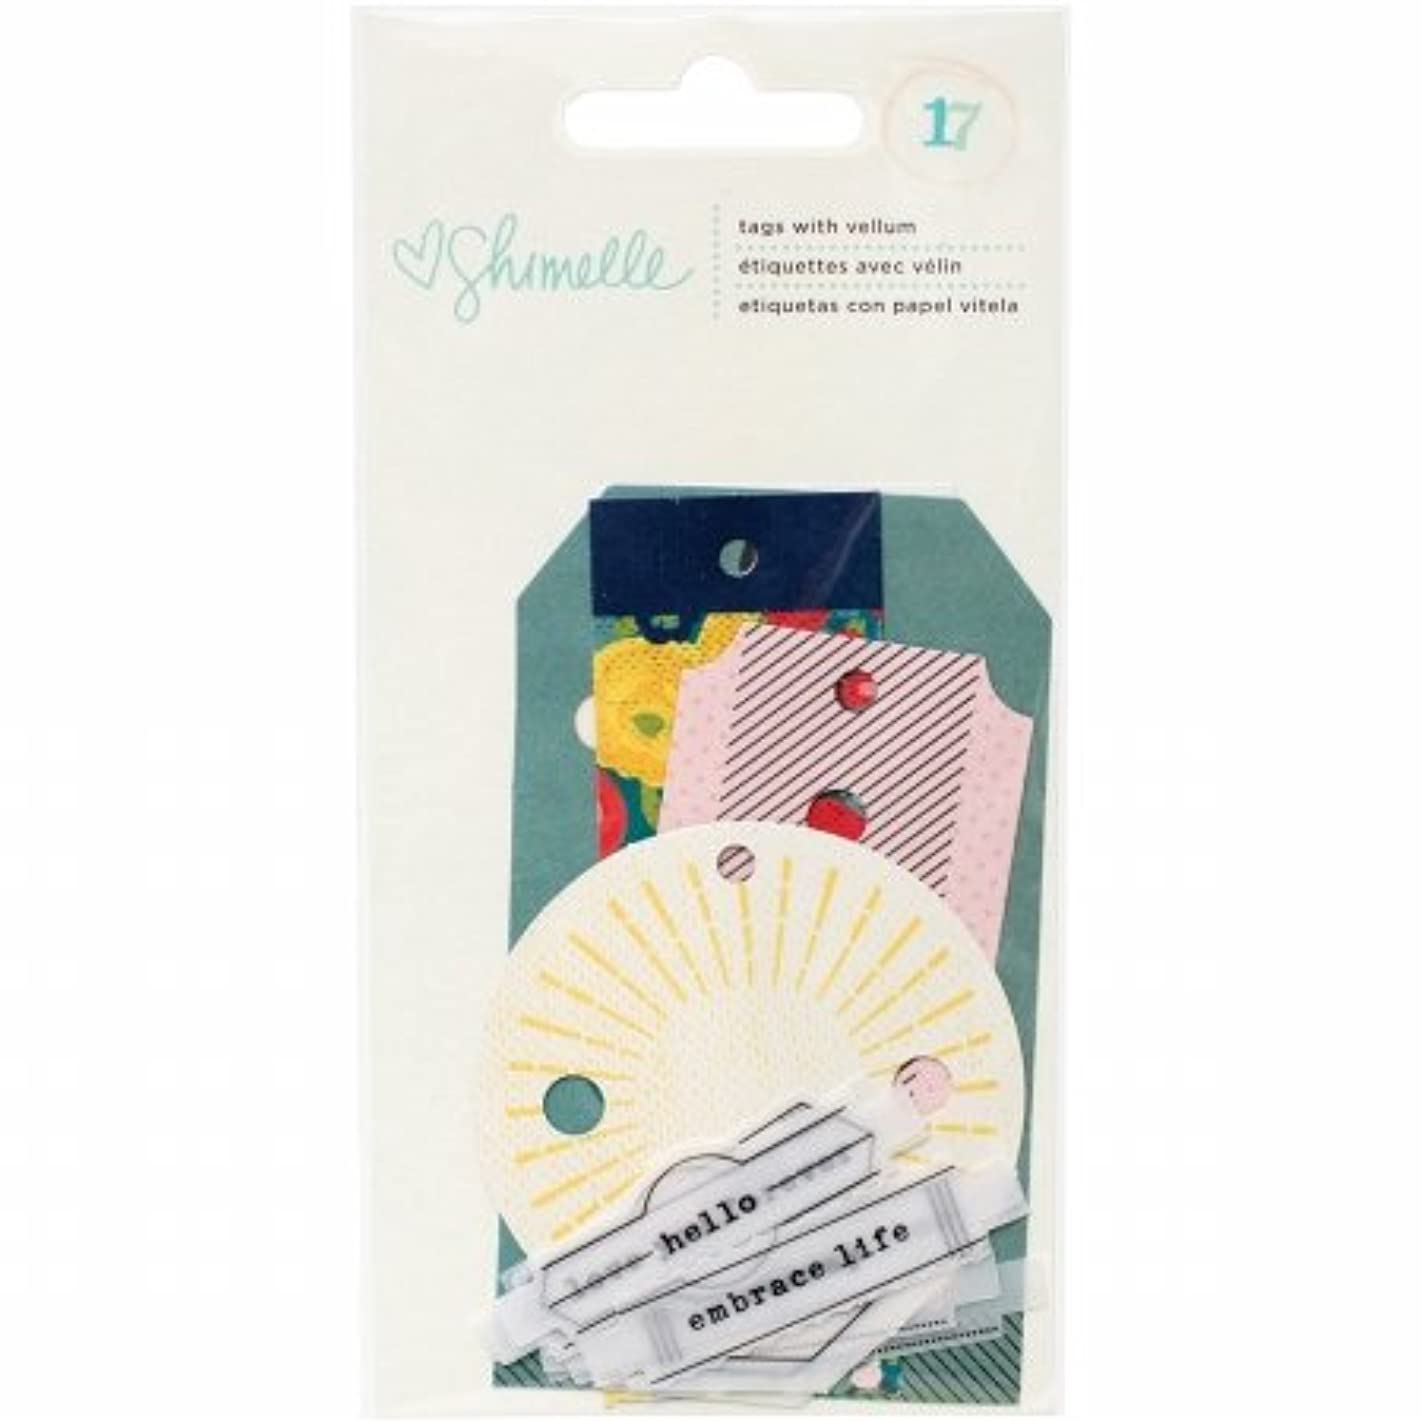 American Crafts 407471 Shimelle True Stories Tags with Vellum Phrases